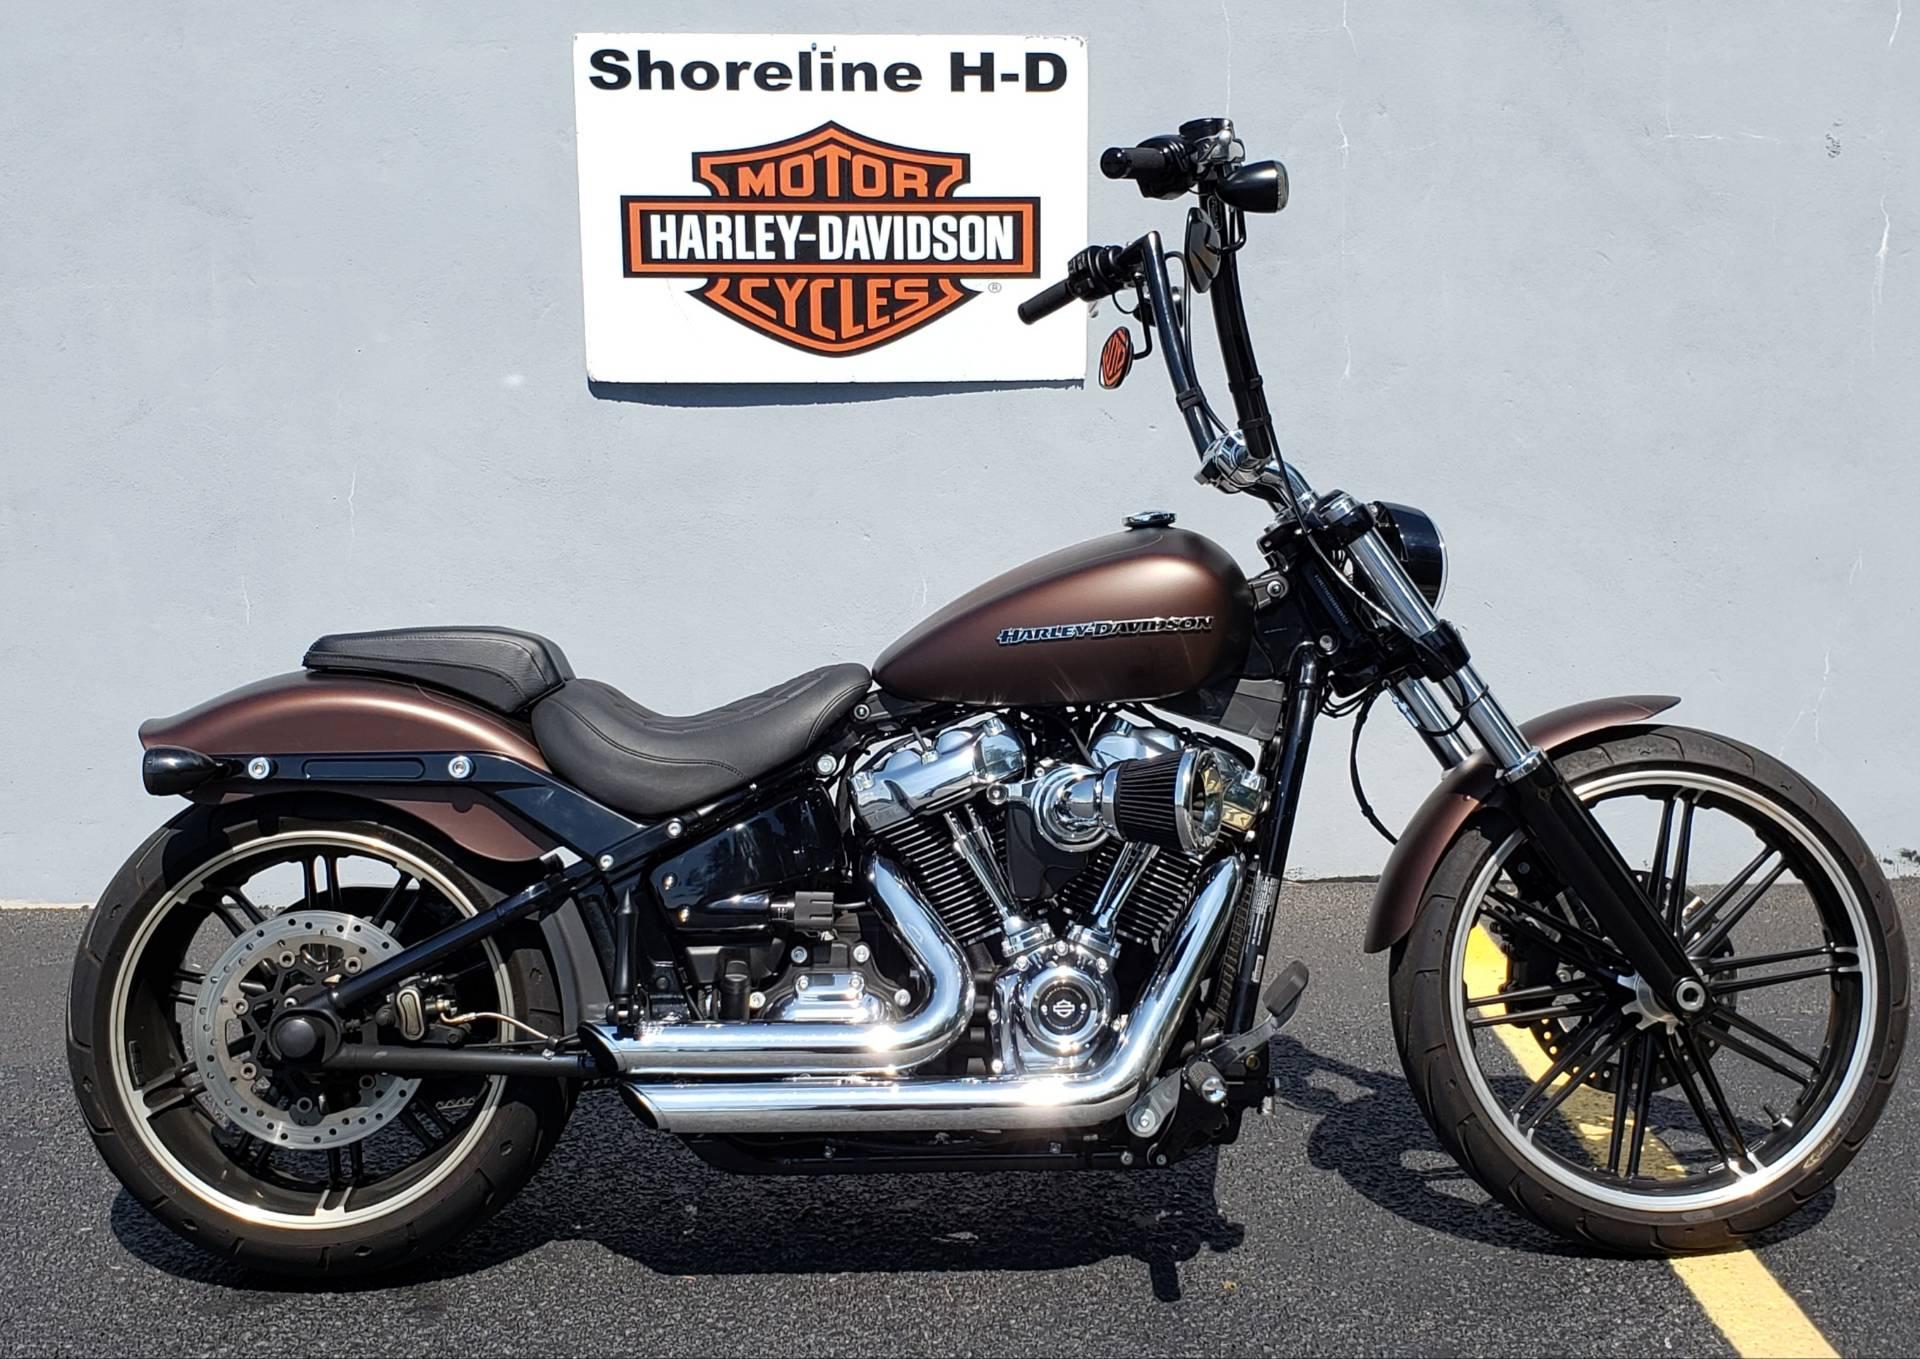 2019 Harley-Davidson Breakout 114 in West Long Branch, New Jersey - Photo 1